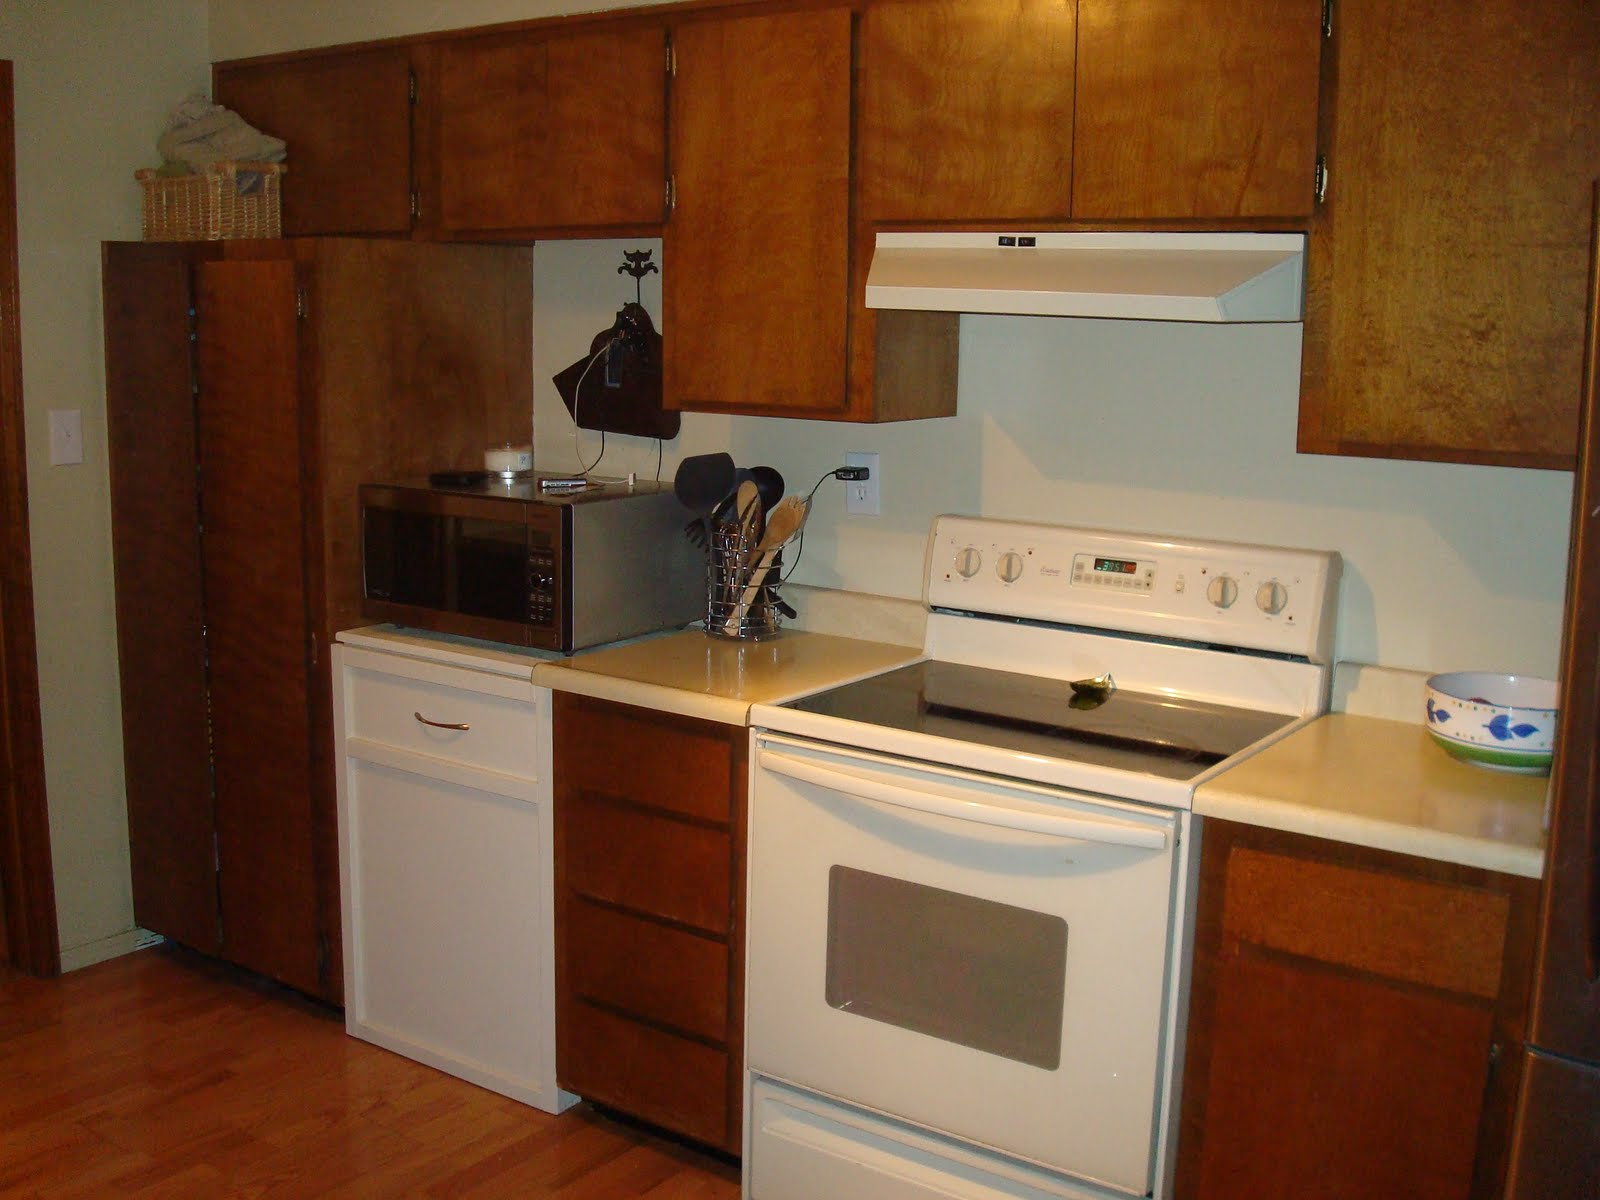 Just Me Low Budget Kitchen Remodel